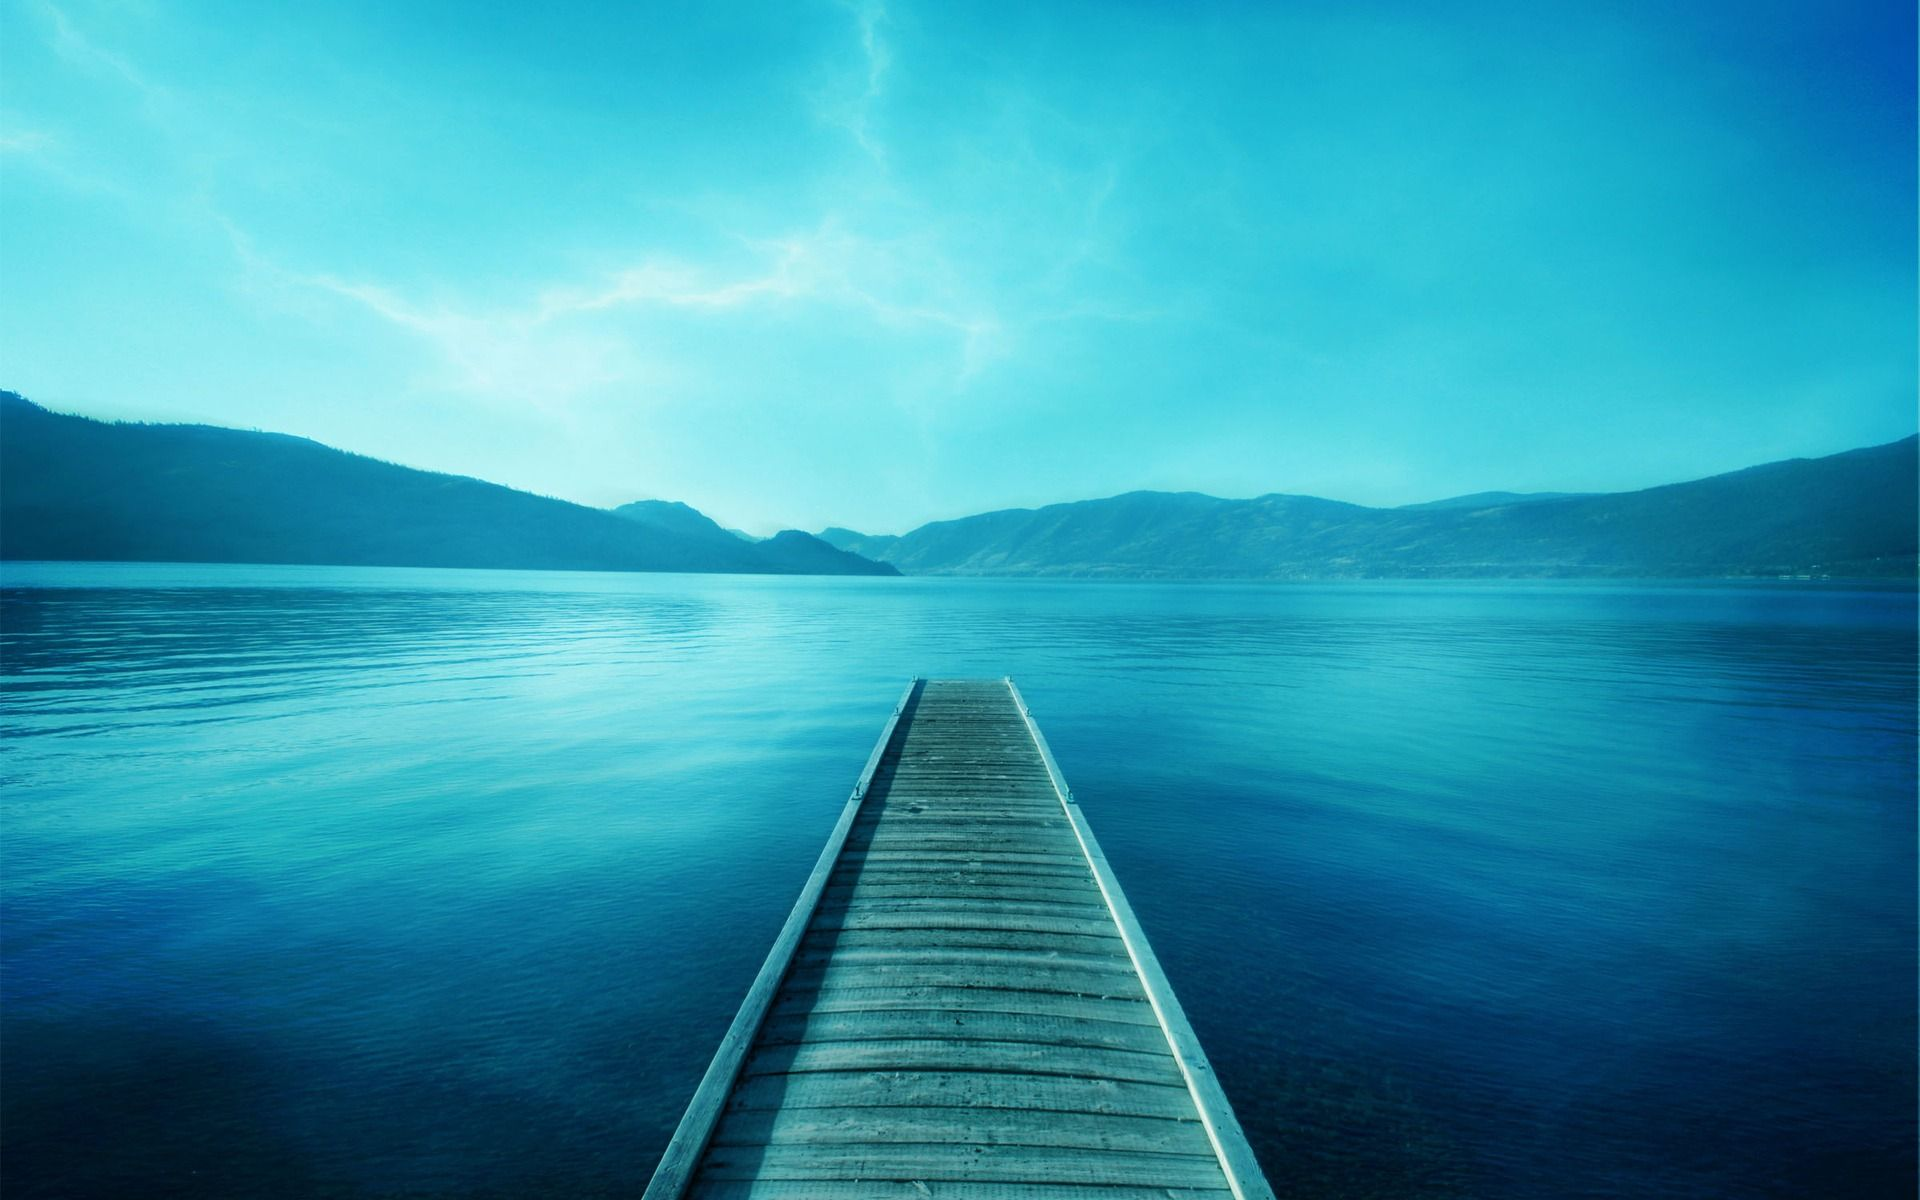 Blue Nature Wallpapers - Top Free Blue Nature Backgrounds